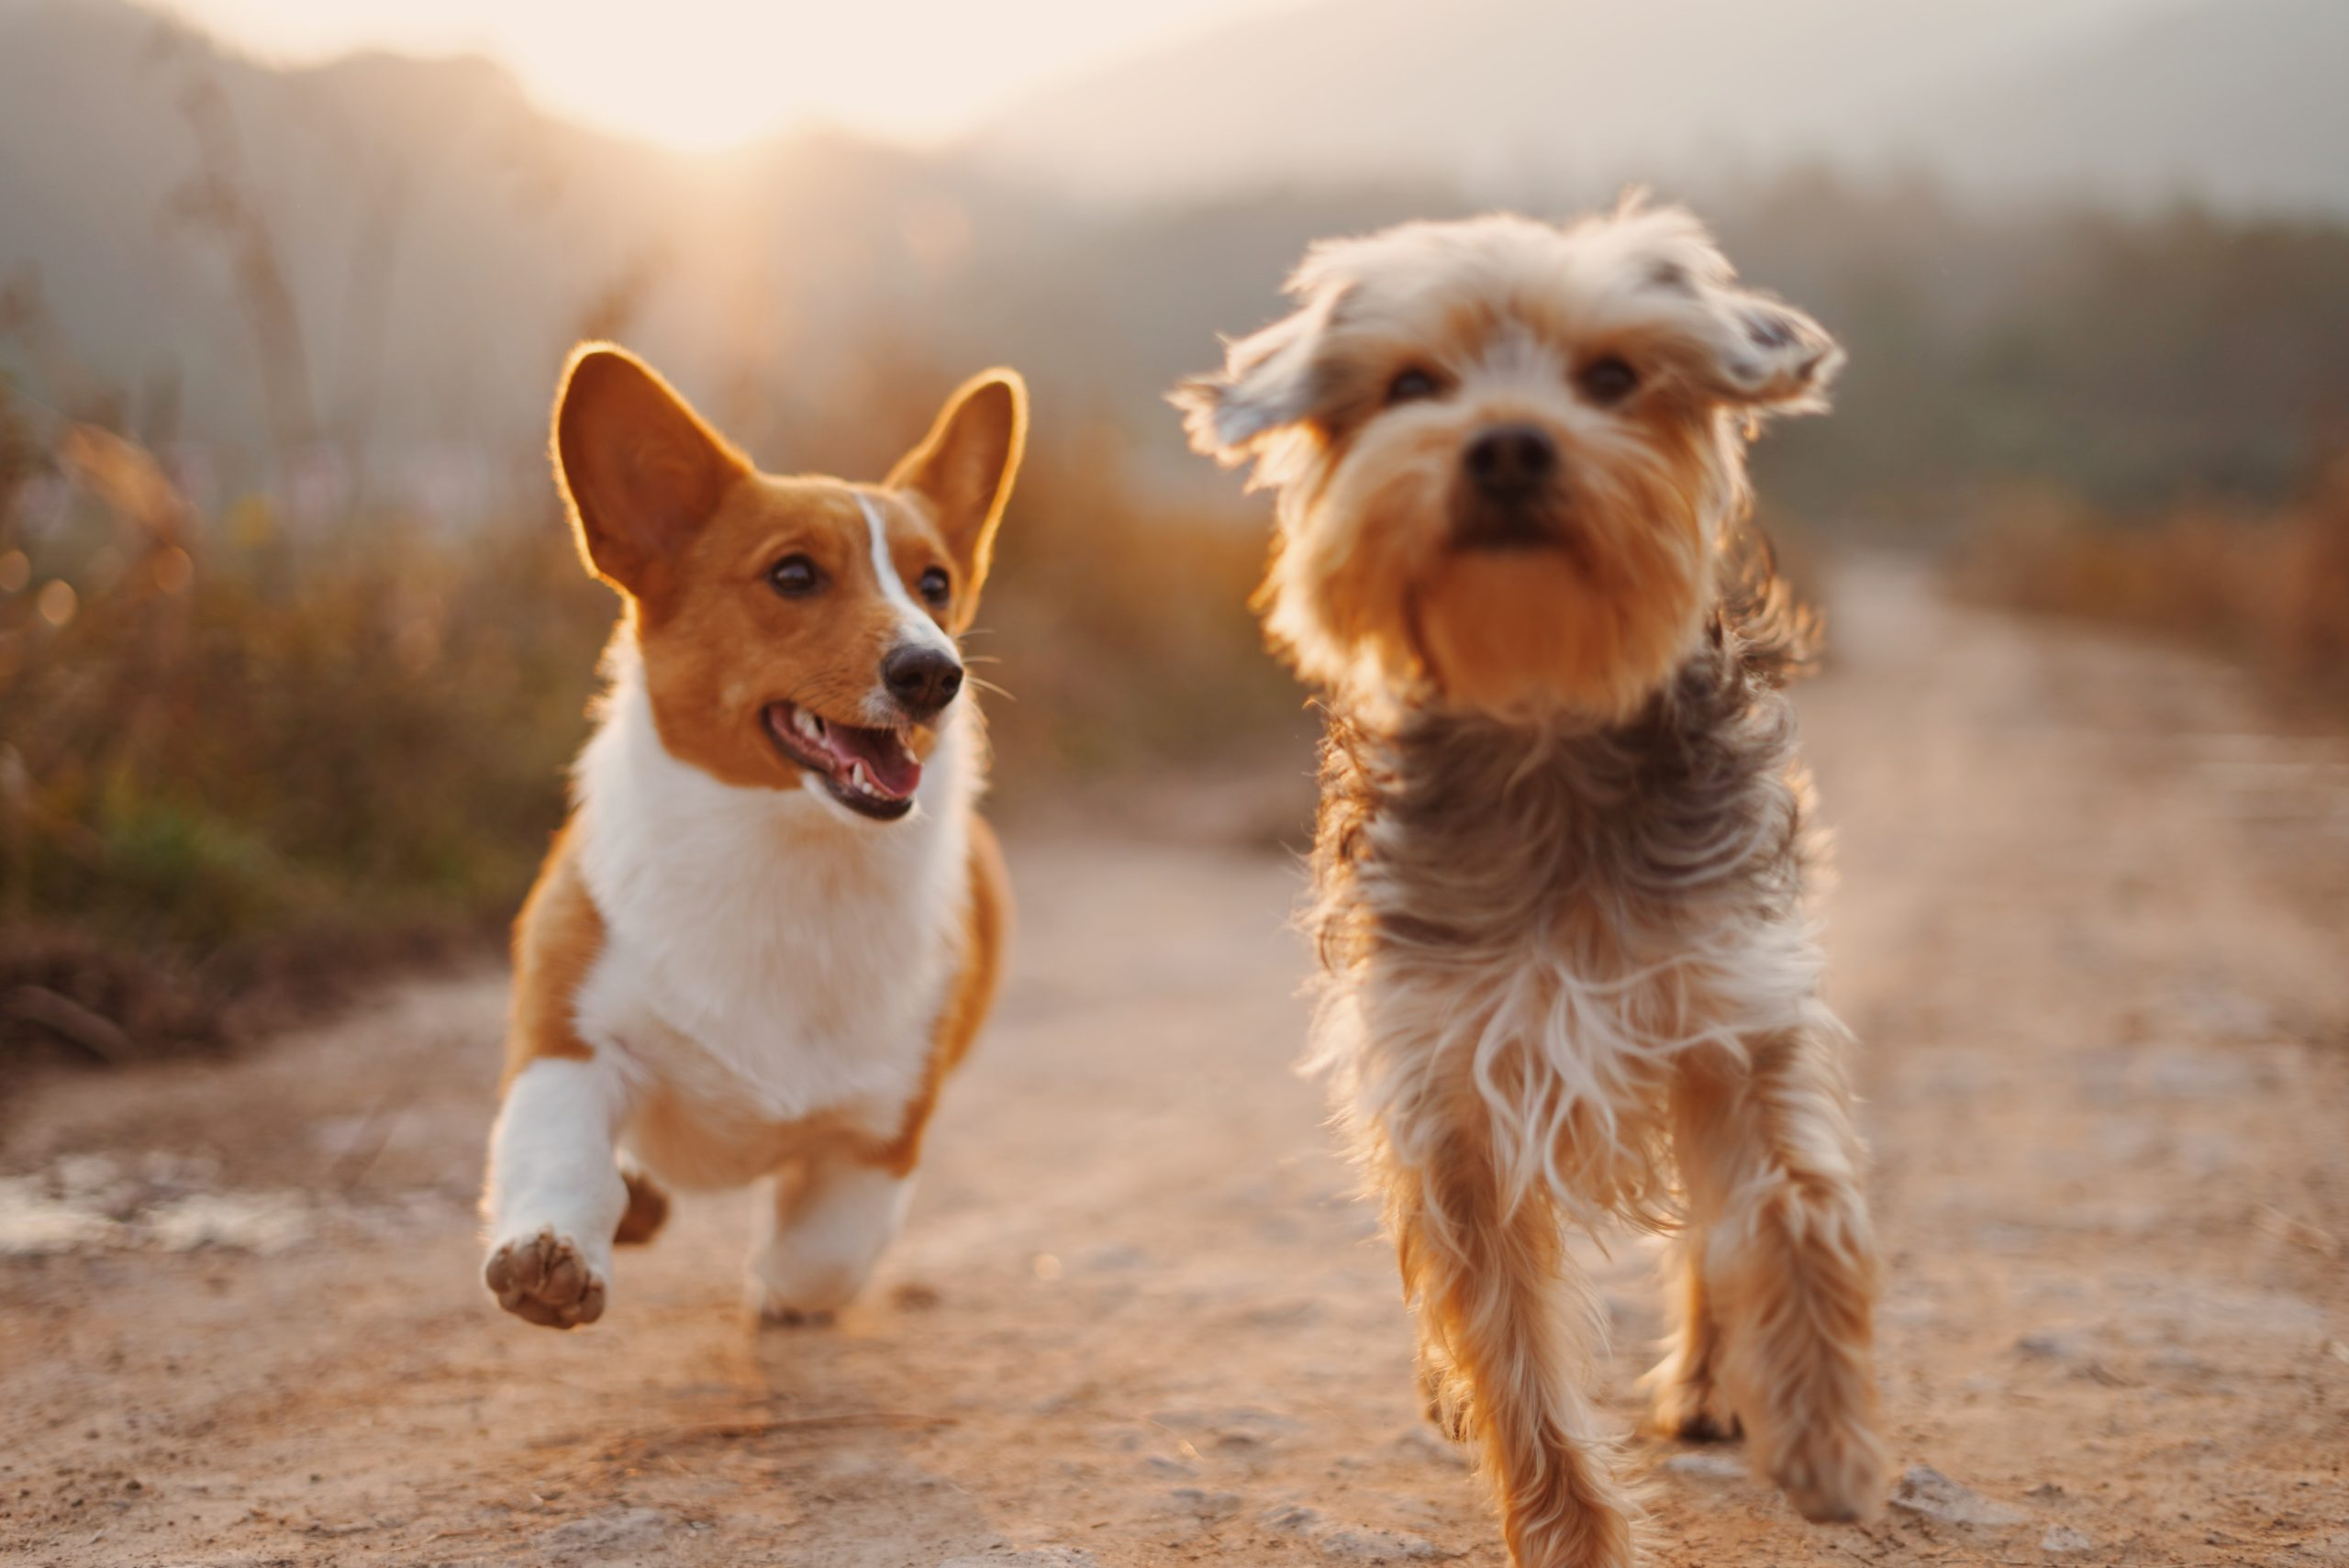 corgi and yorki dogs running together